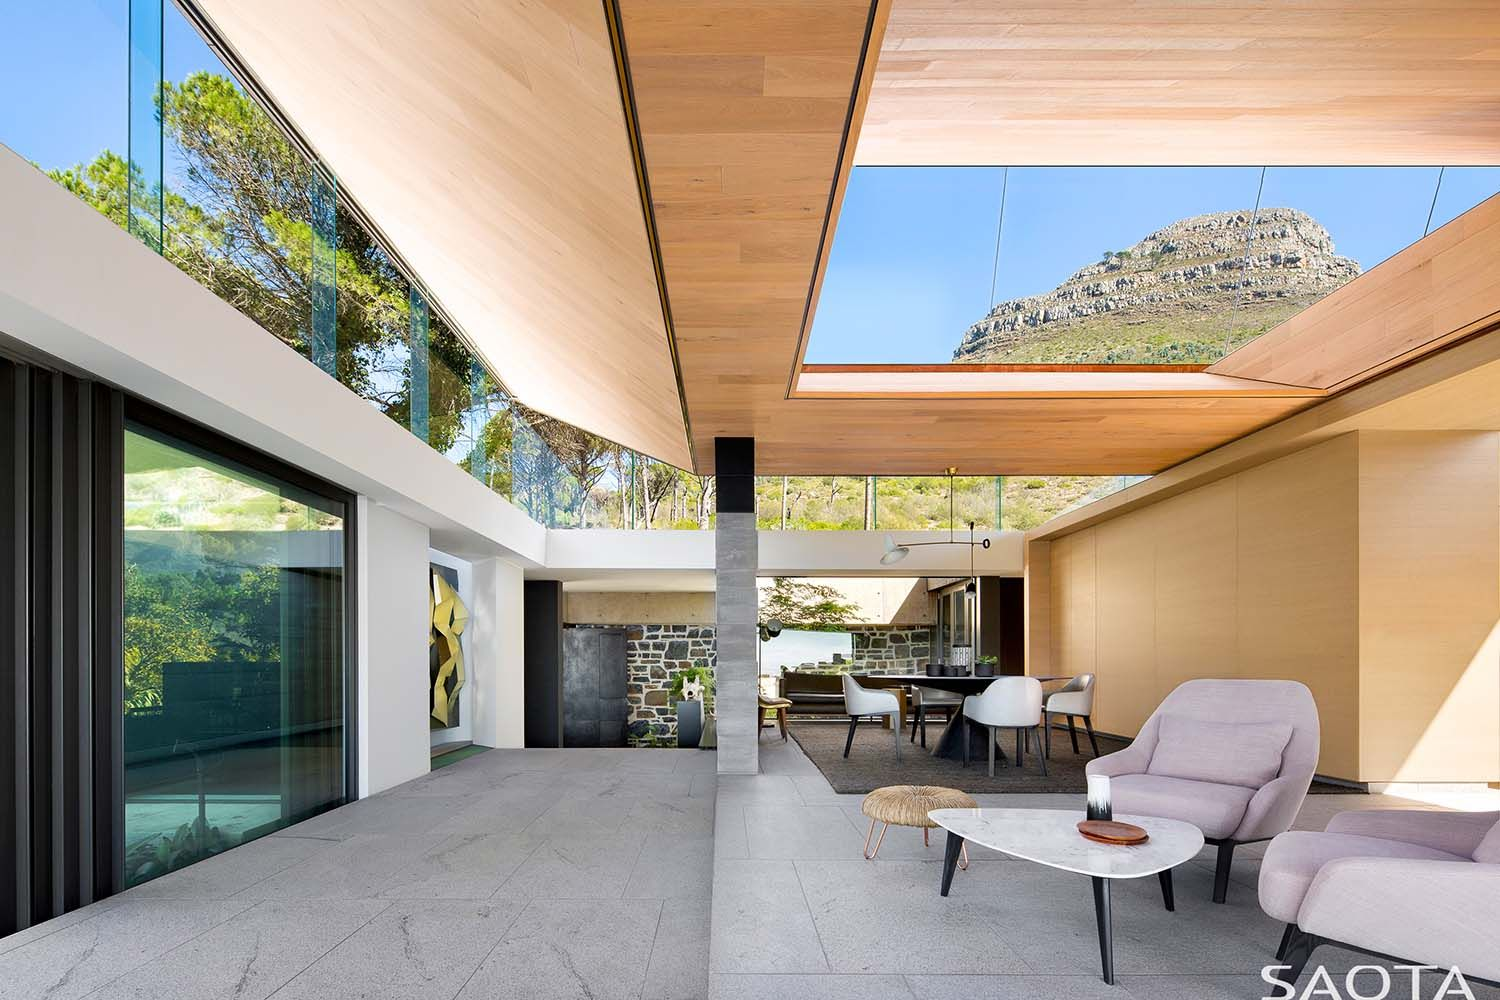 Striking Modern Home In Cape Town Showcases An Inverted Pyramid Roof Pyramid Roof House Design Clerestory Windows